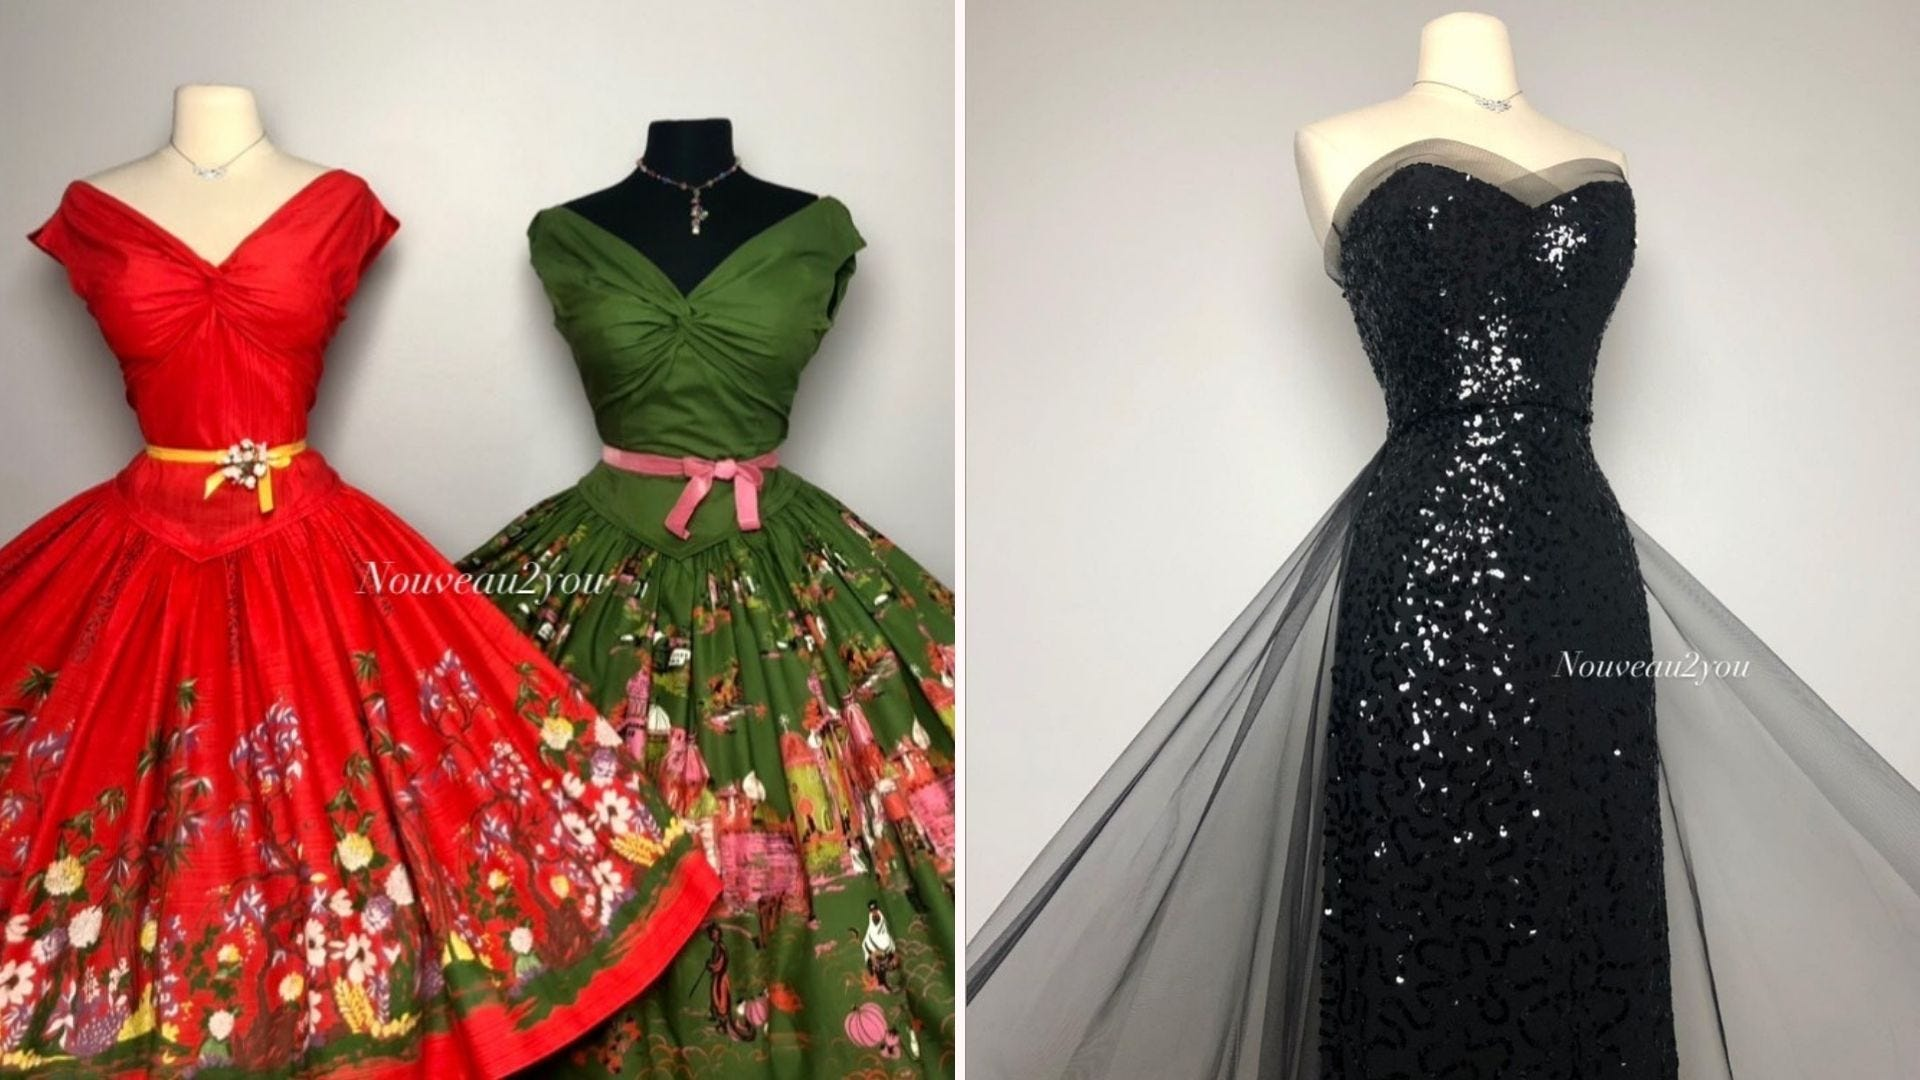 Mannequins with a red dress with floral skirt; a green dress with a floral skirt; a black sequined strapless gown